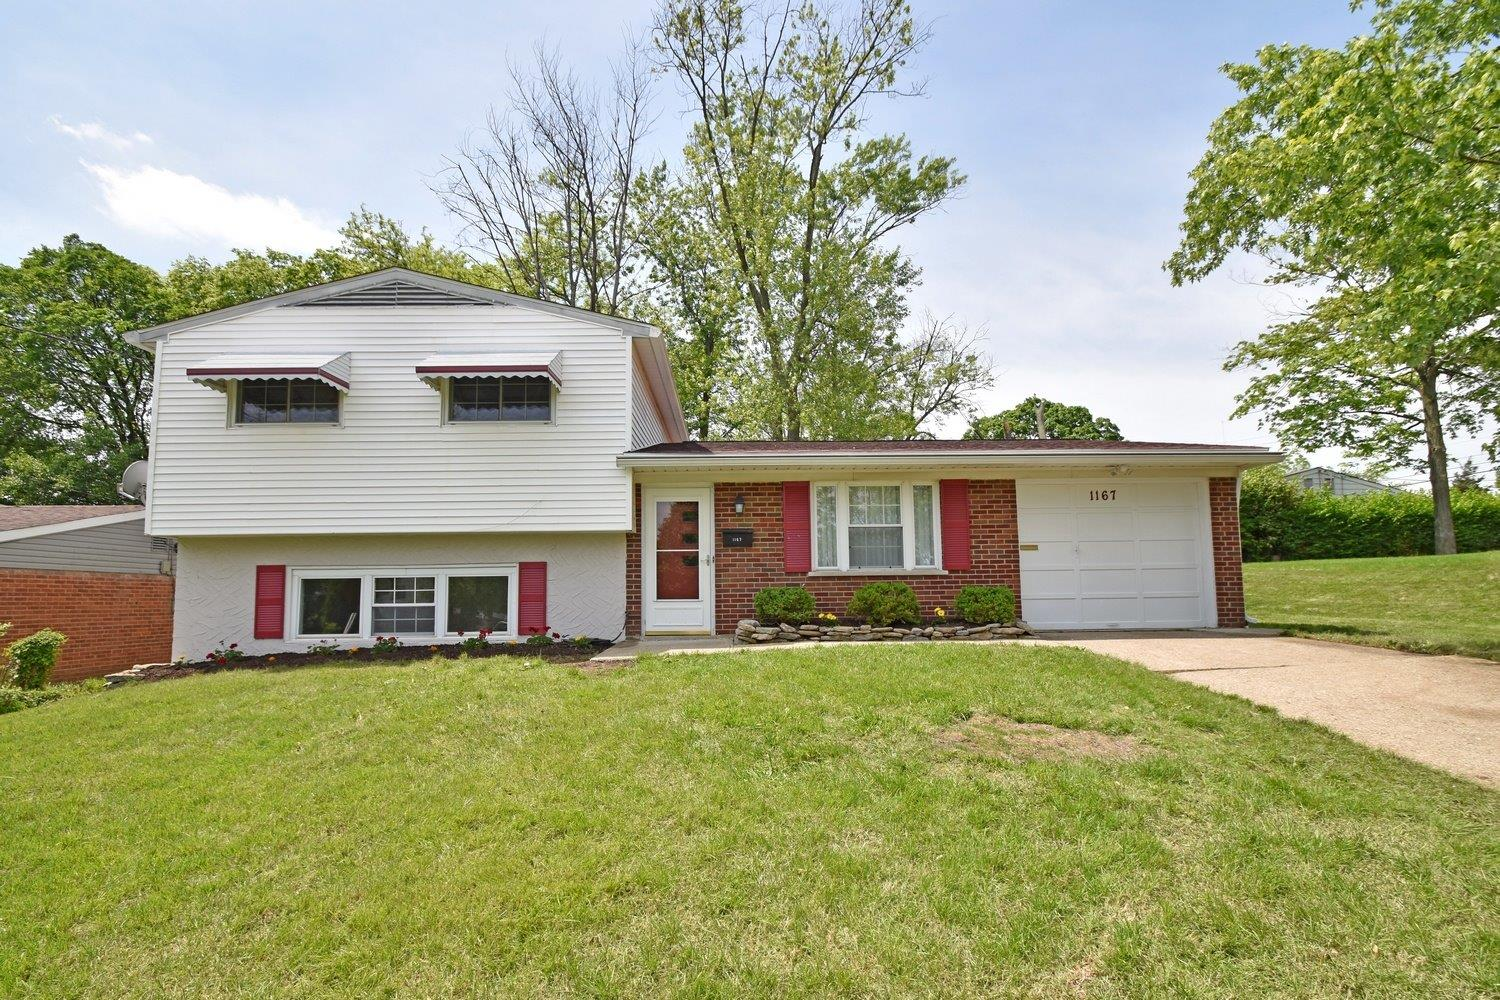 Photo 1 for 1167 Wainwright Dr Springdale, OH 45246